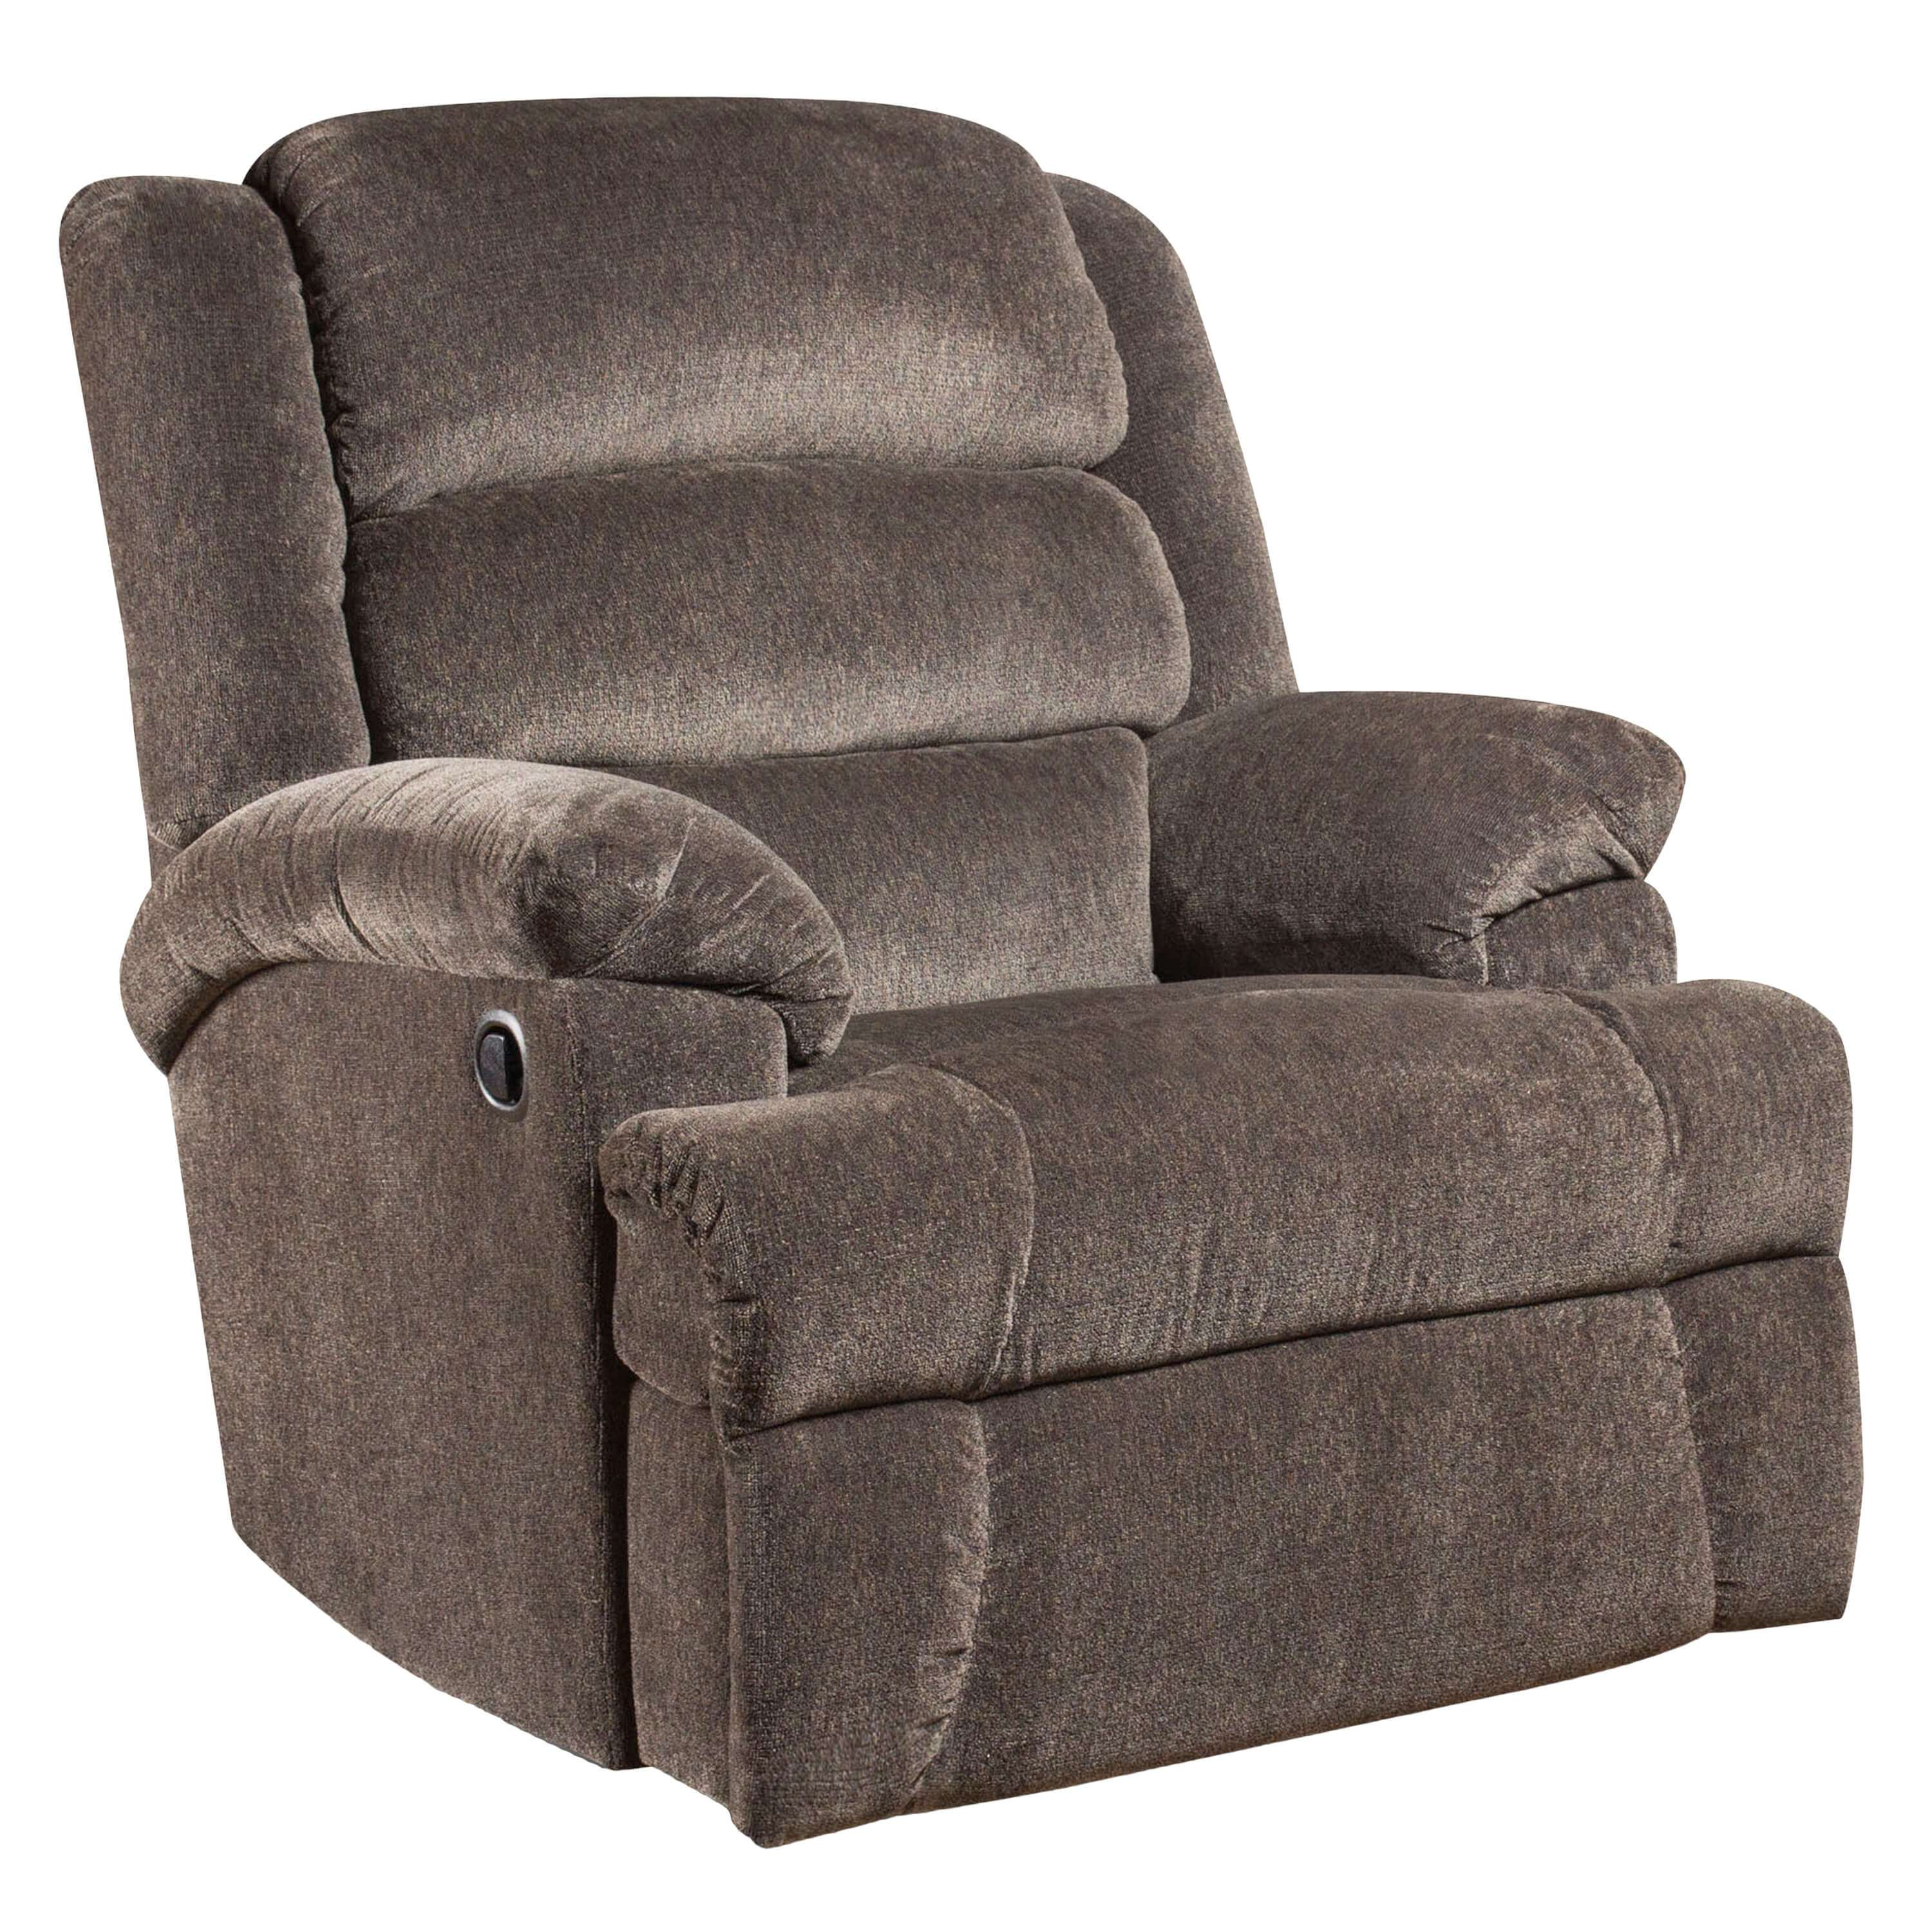 contemporary-recliners-comfortable-recliners.jpg